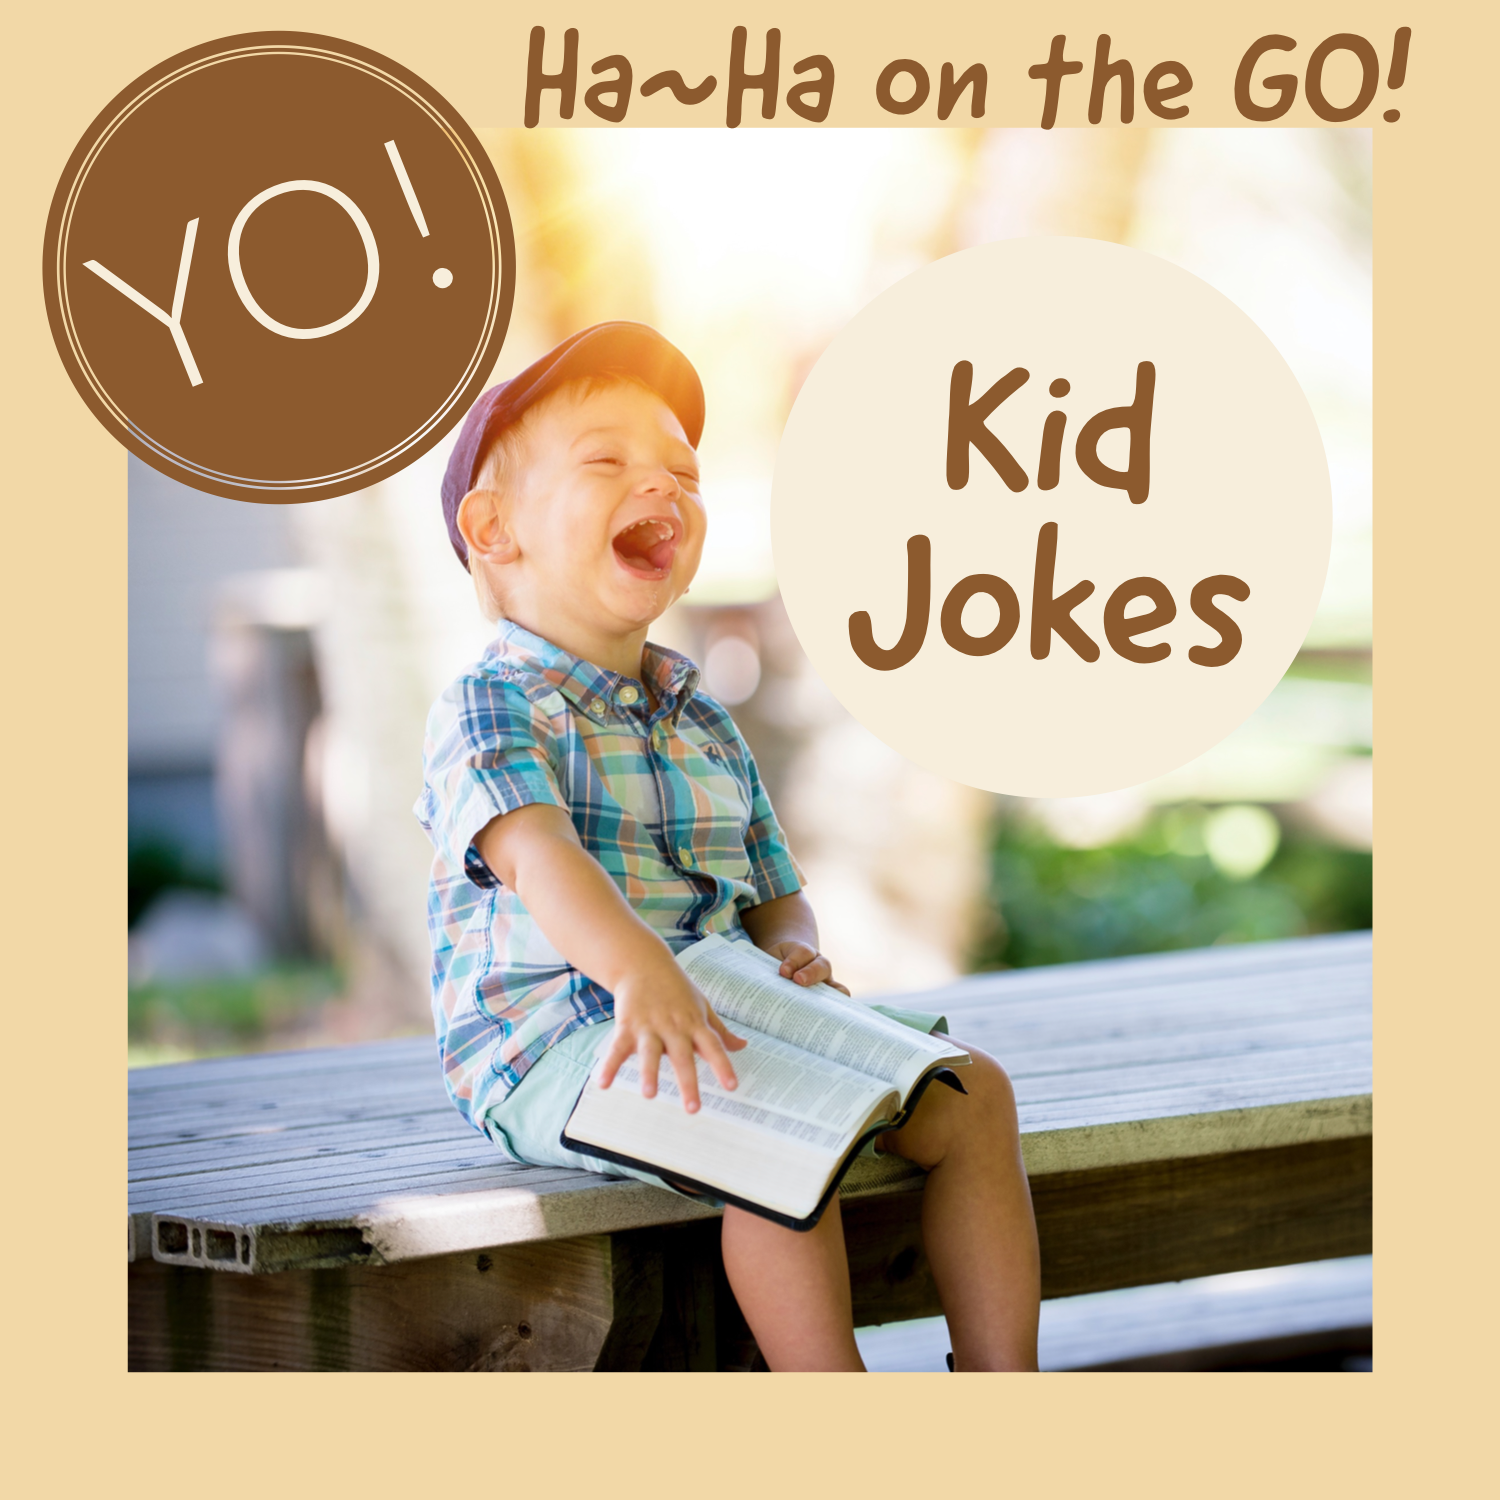 Yo! Ha Ha On the Go!